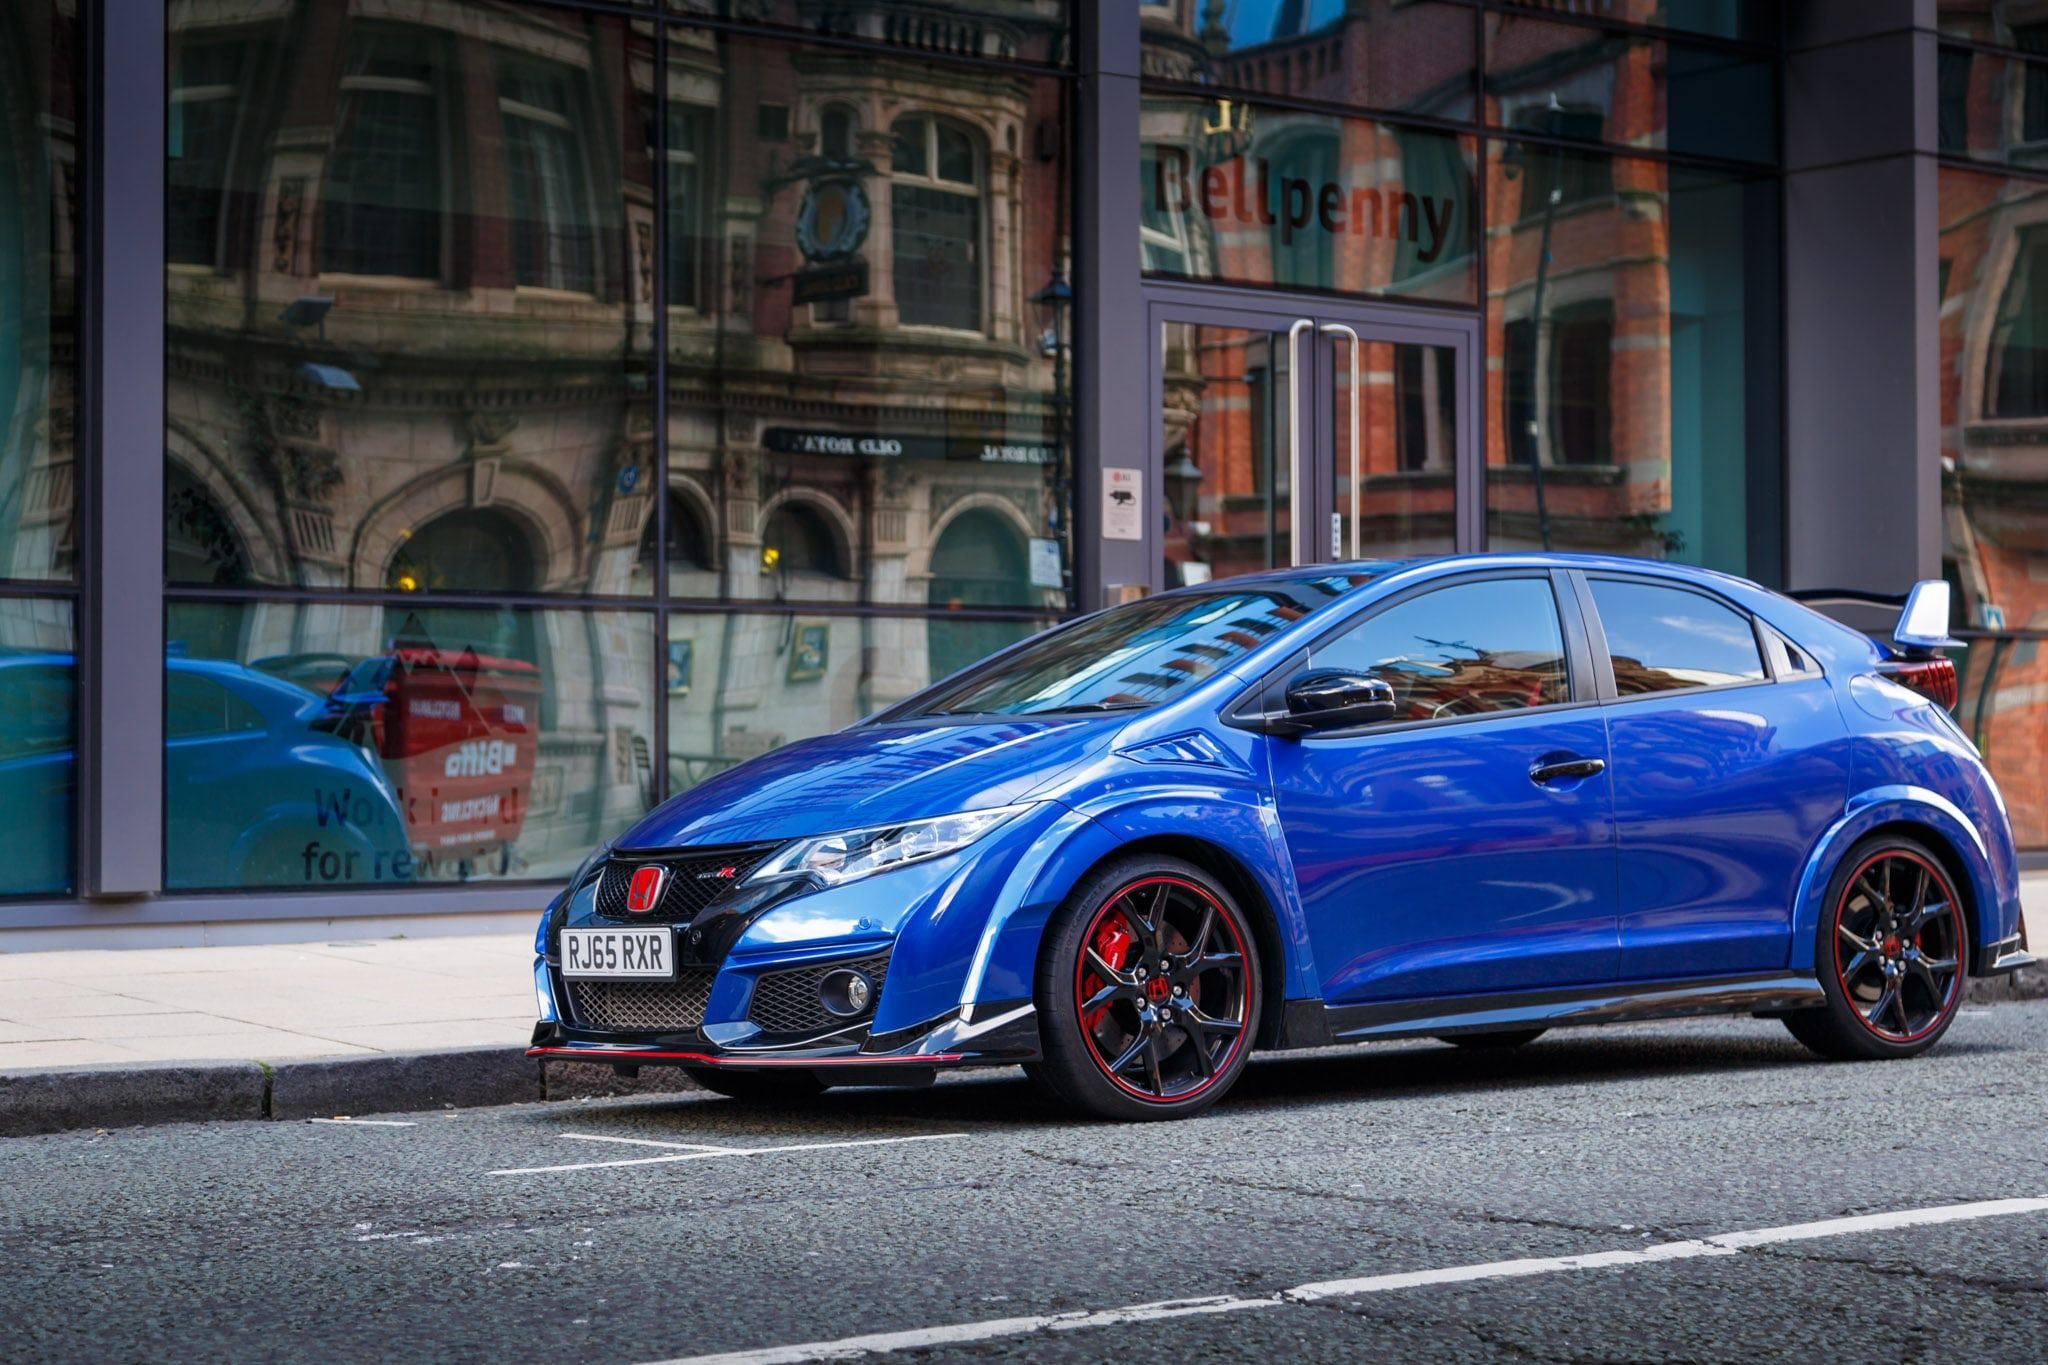 Honda Civic Type R Wallpaper Desktop Gea Cars Desktop Hd